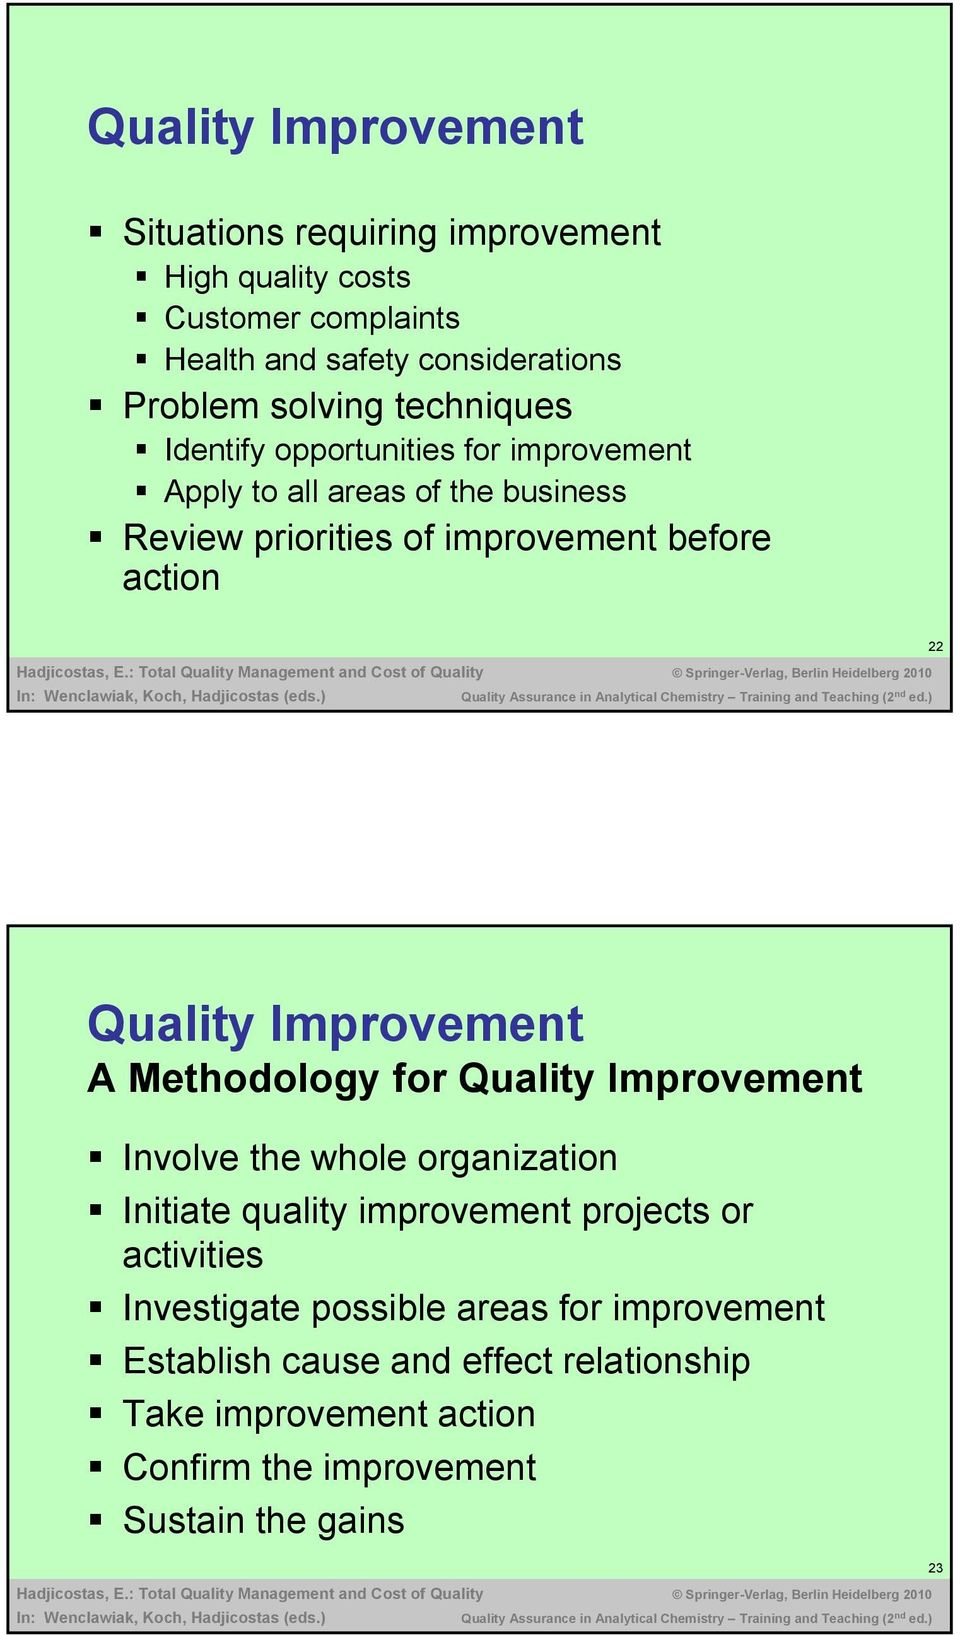 Quality Improvement A Methodology for Quality Improvement Involve the whole organization Initiate quality improvement projects or activities